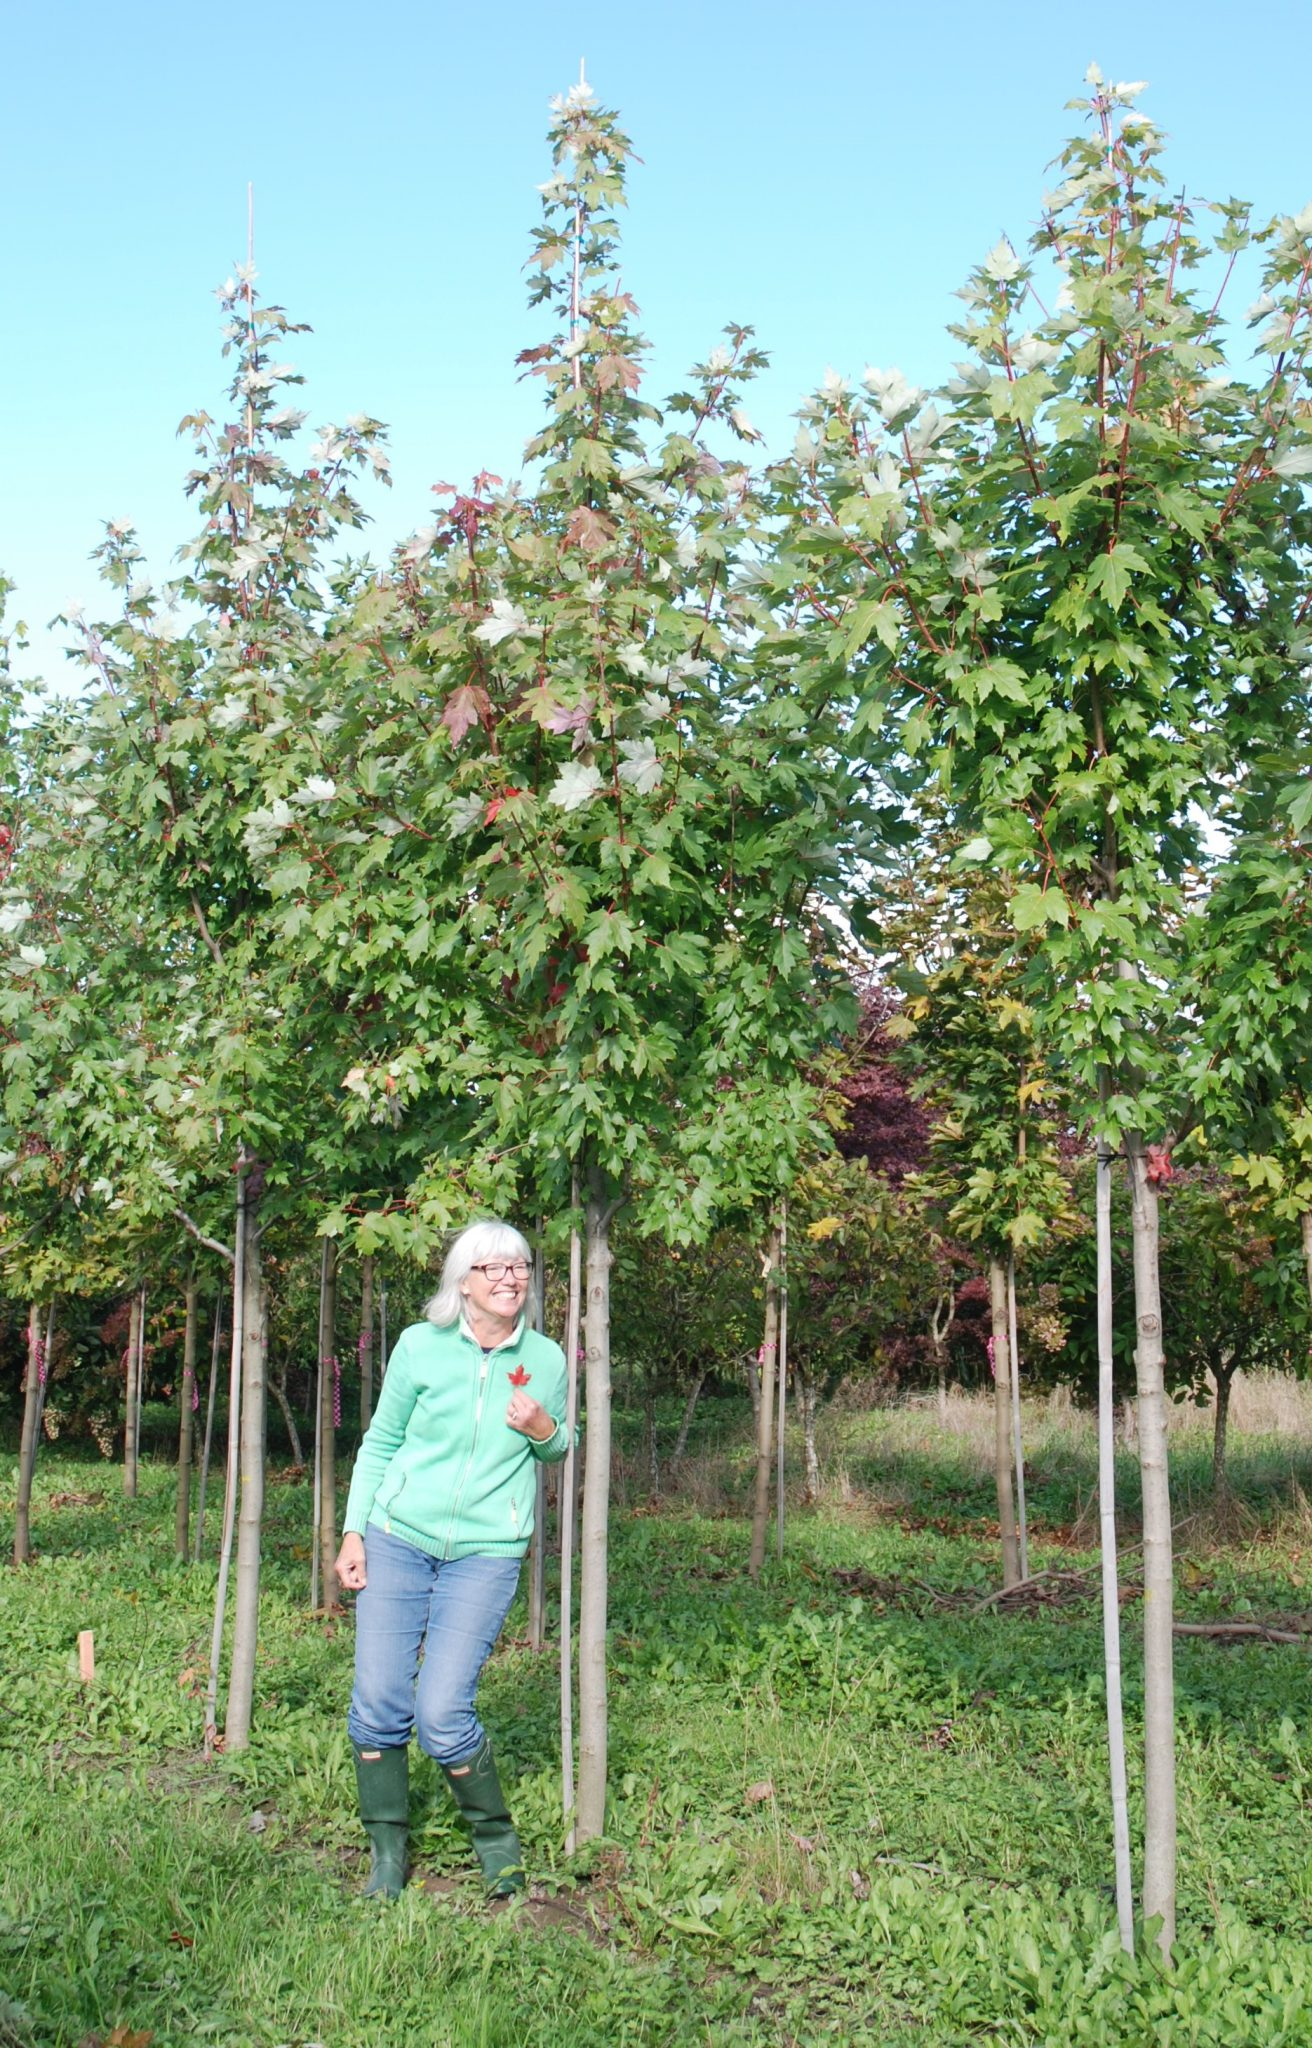 Rotary Club of Chilliwack announces 85 FOR 85 commemorative tree planting